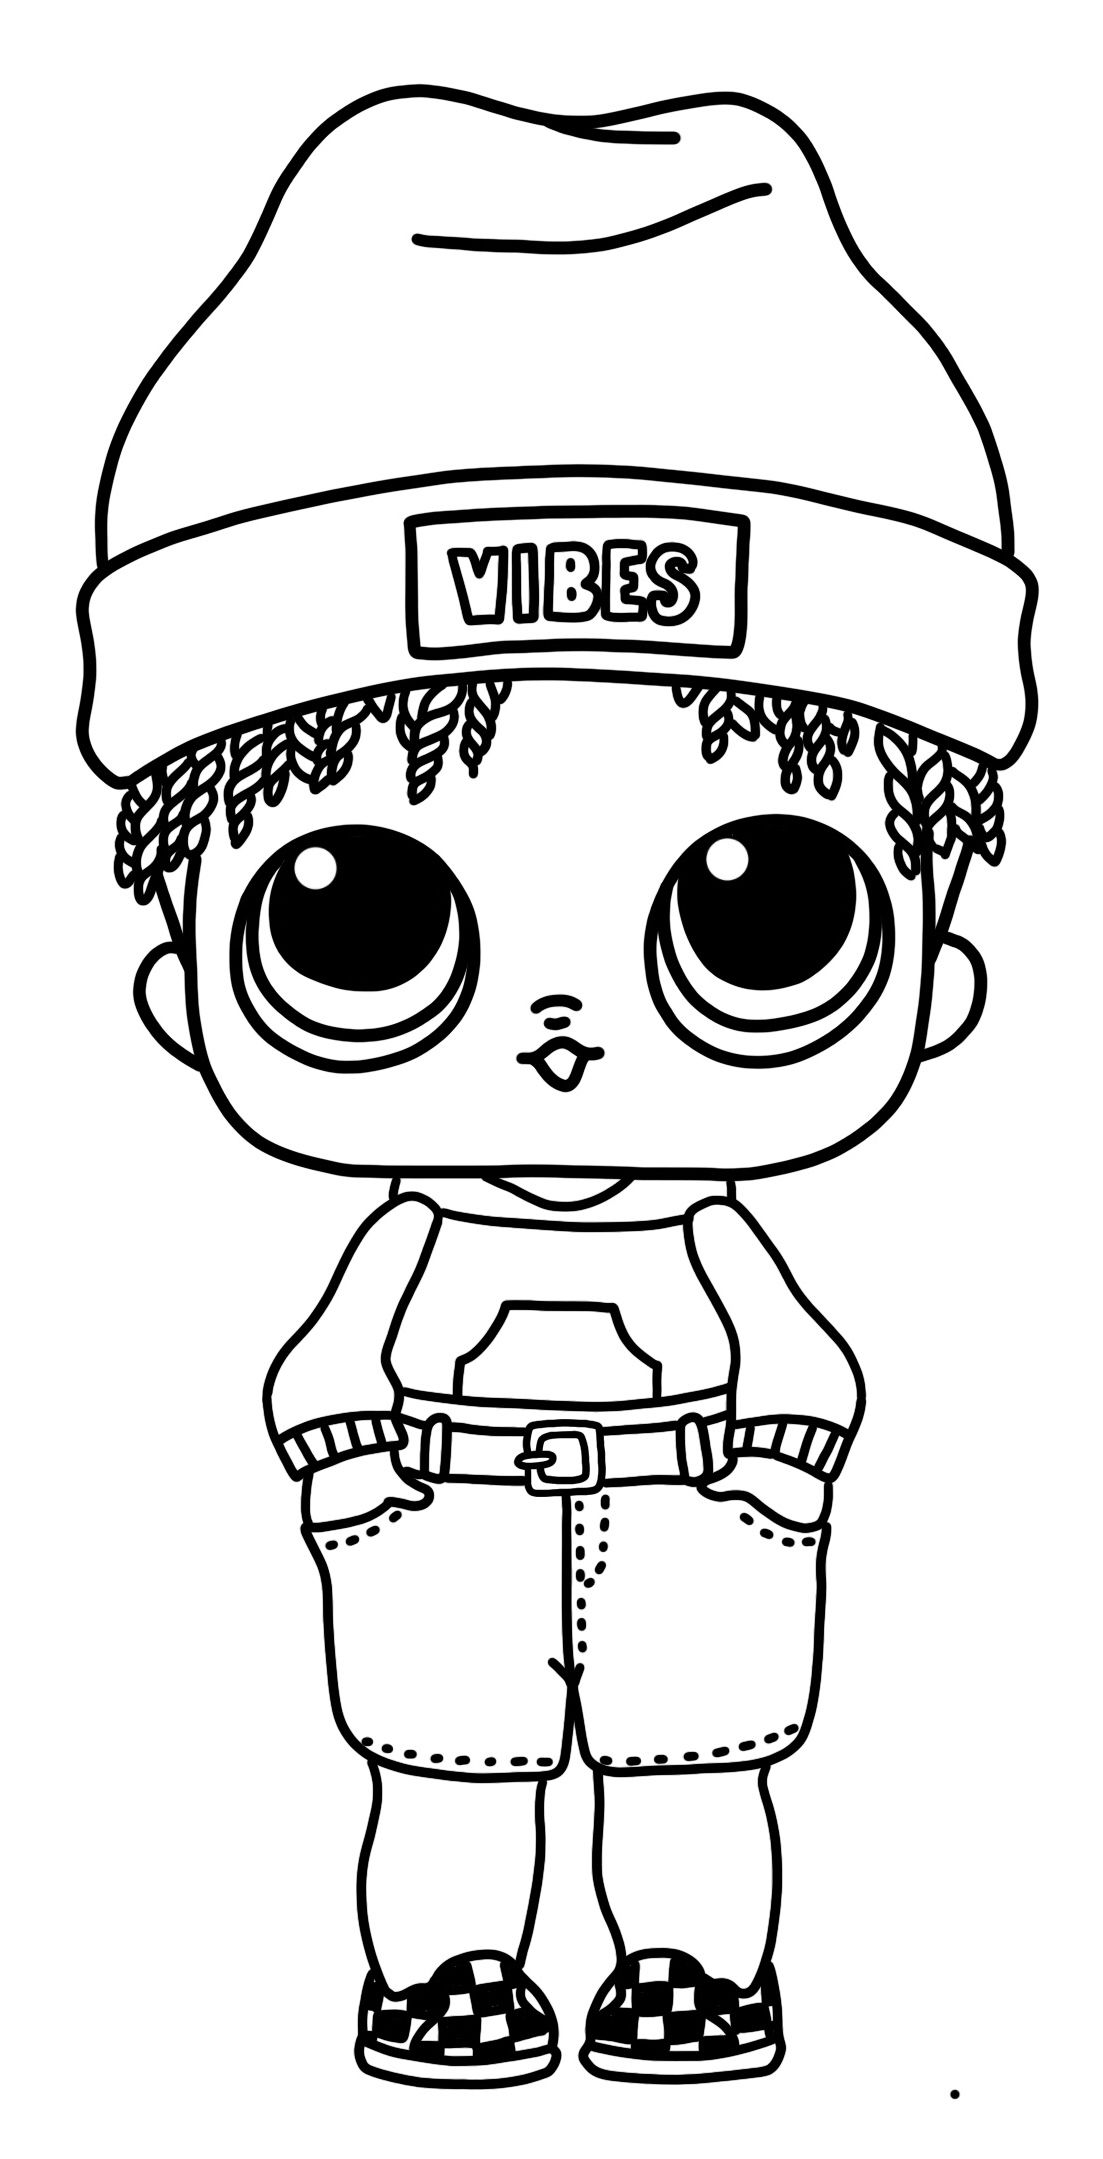 New 2019 Lol Surprise Boys Coloring Pages Sunny Lol Boy Coloring Coloring Pages For Boys Coloring Pages For Kids